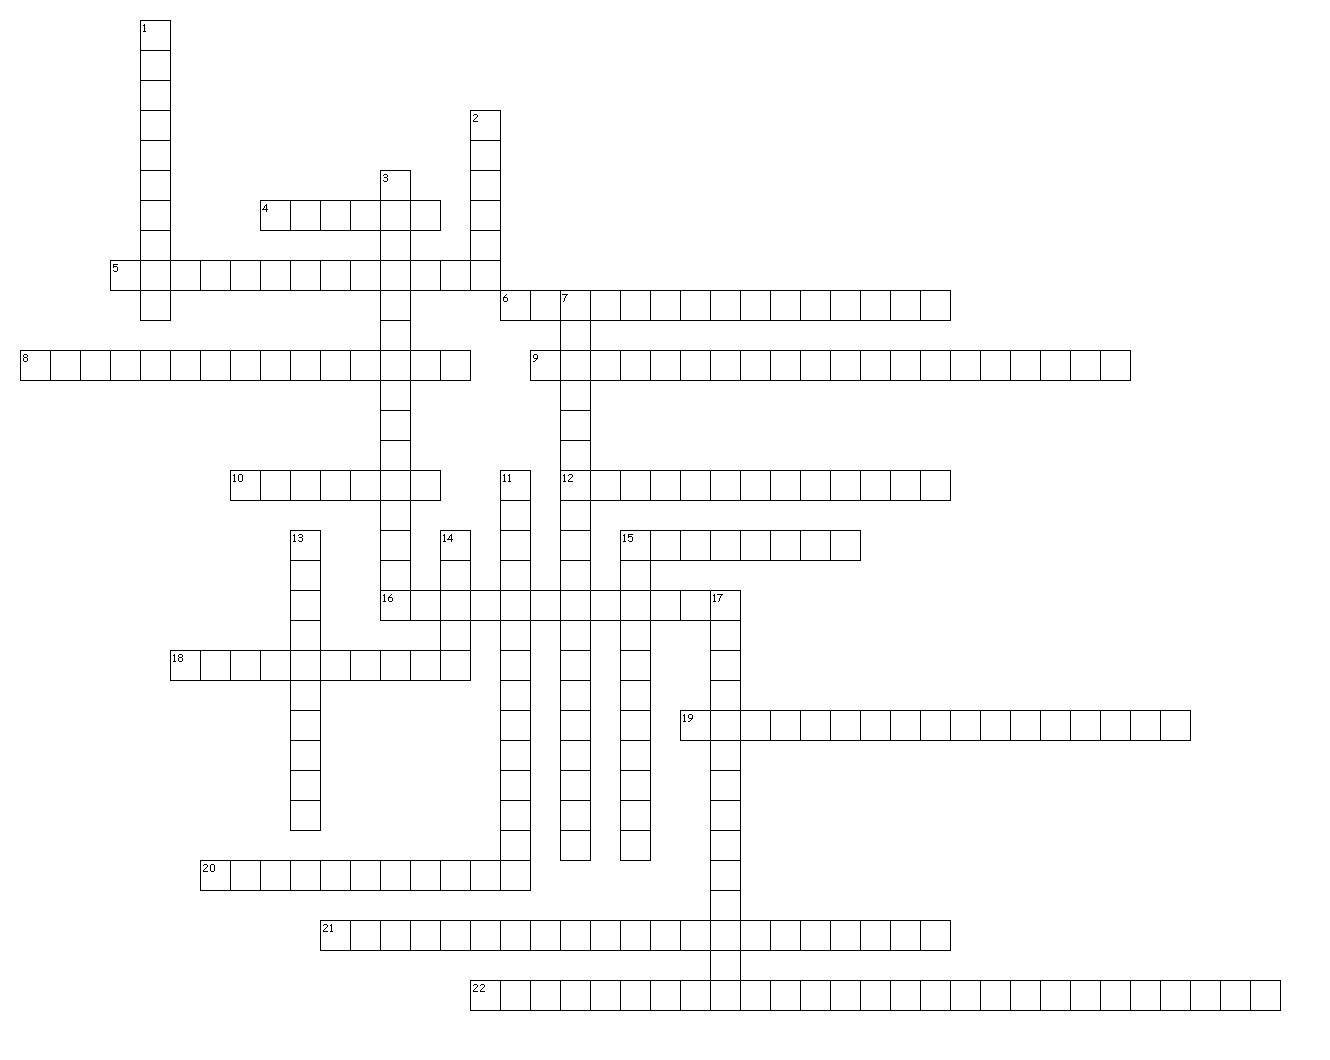 criss cross word puzzles criss cross puzzle with images criss cross puzzle criss puzzles criss cross word